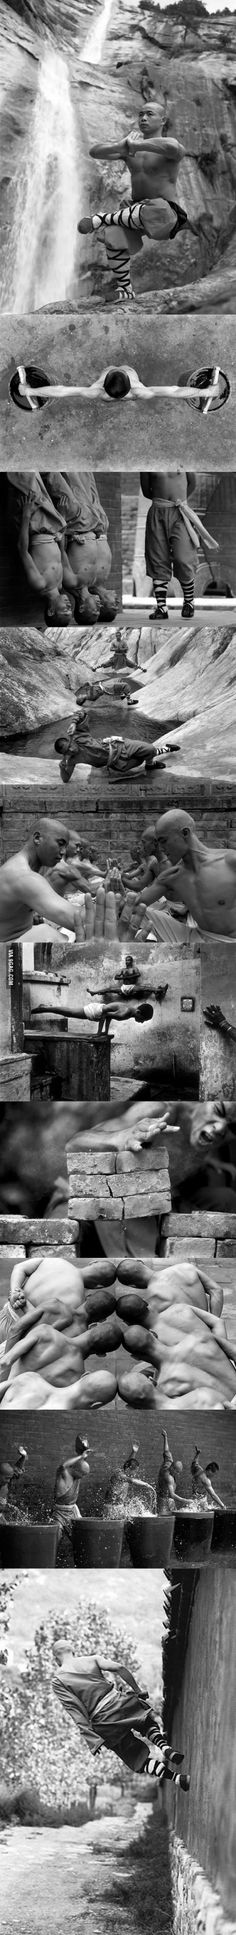 The Dedication of Shaolin Monks